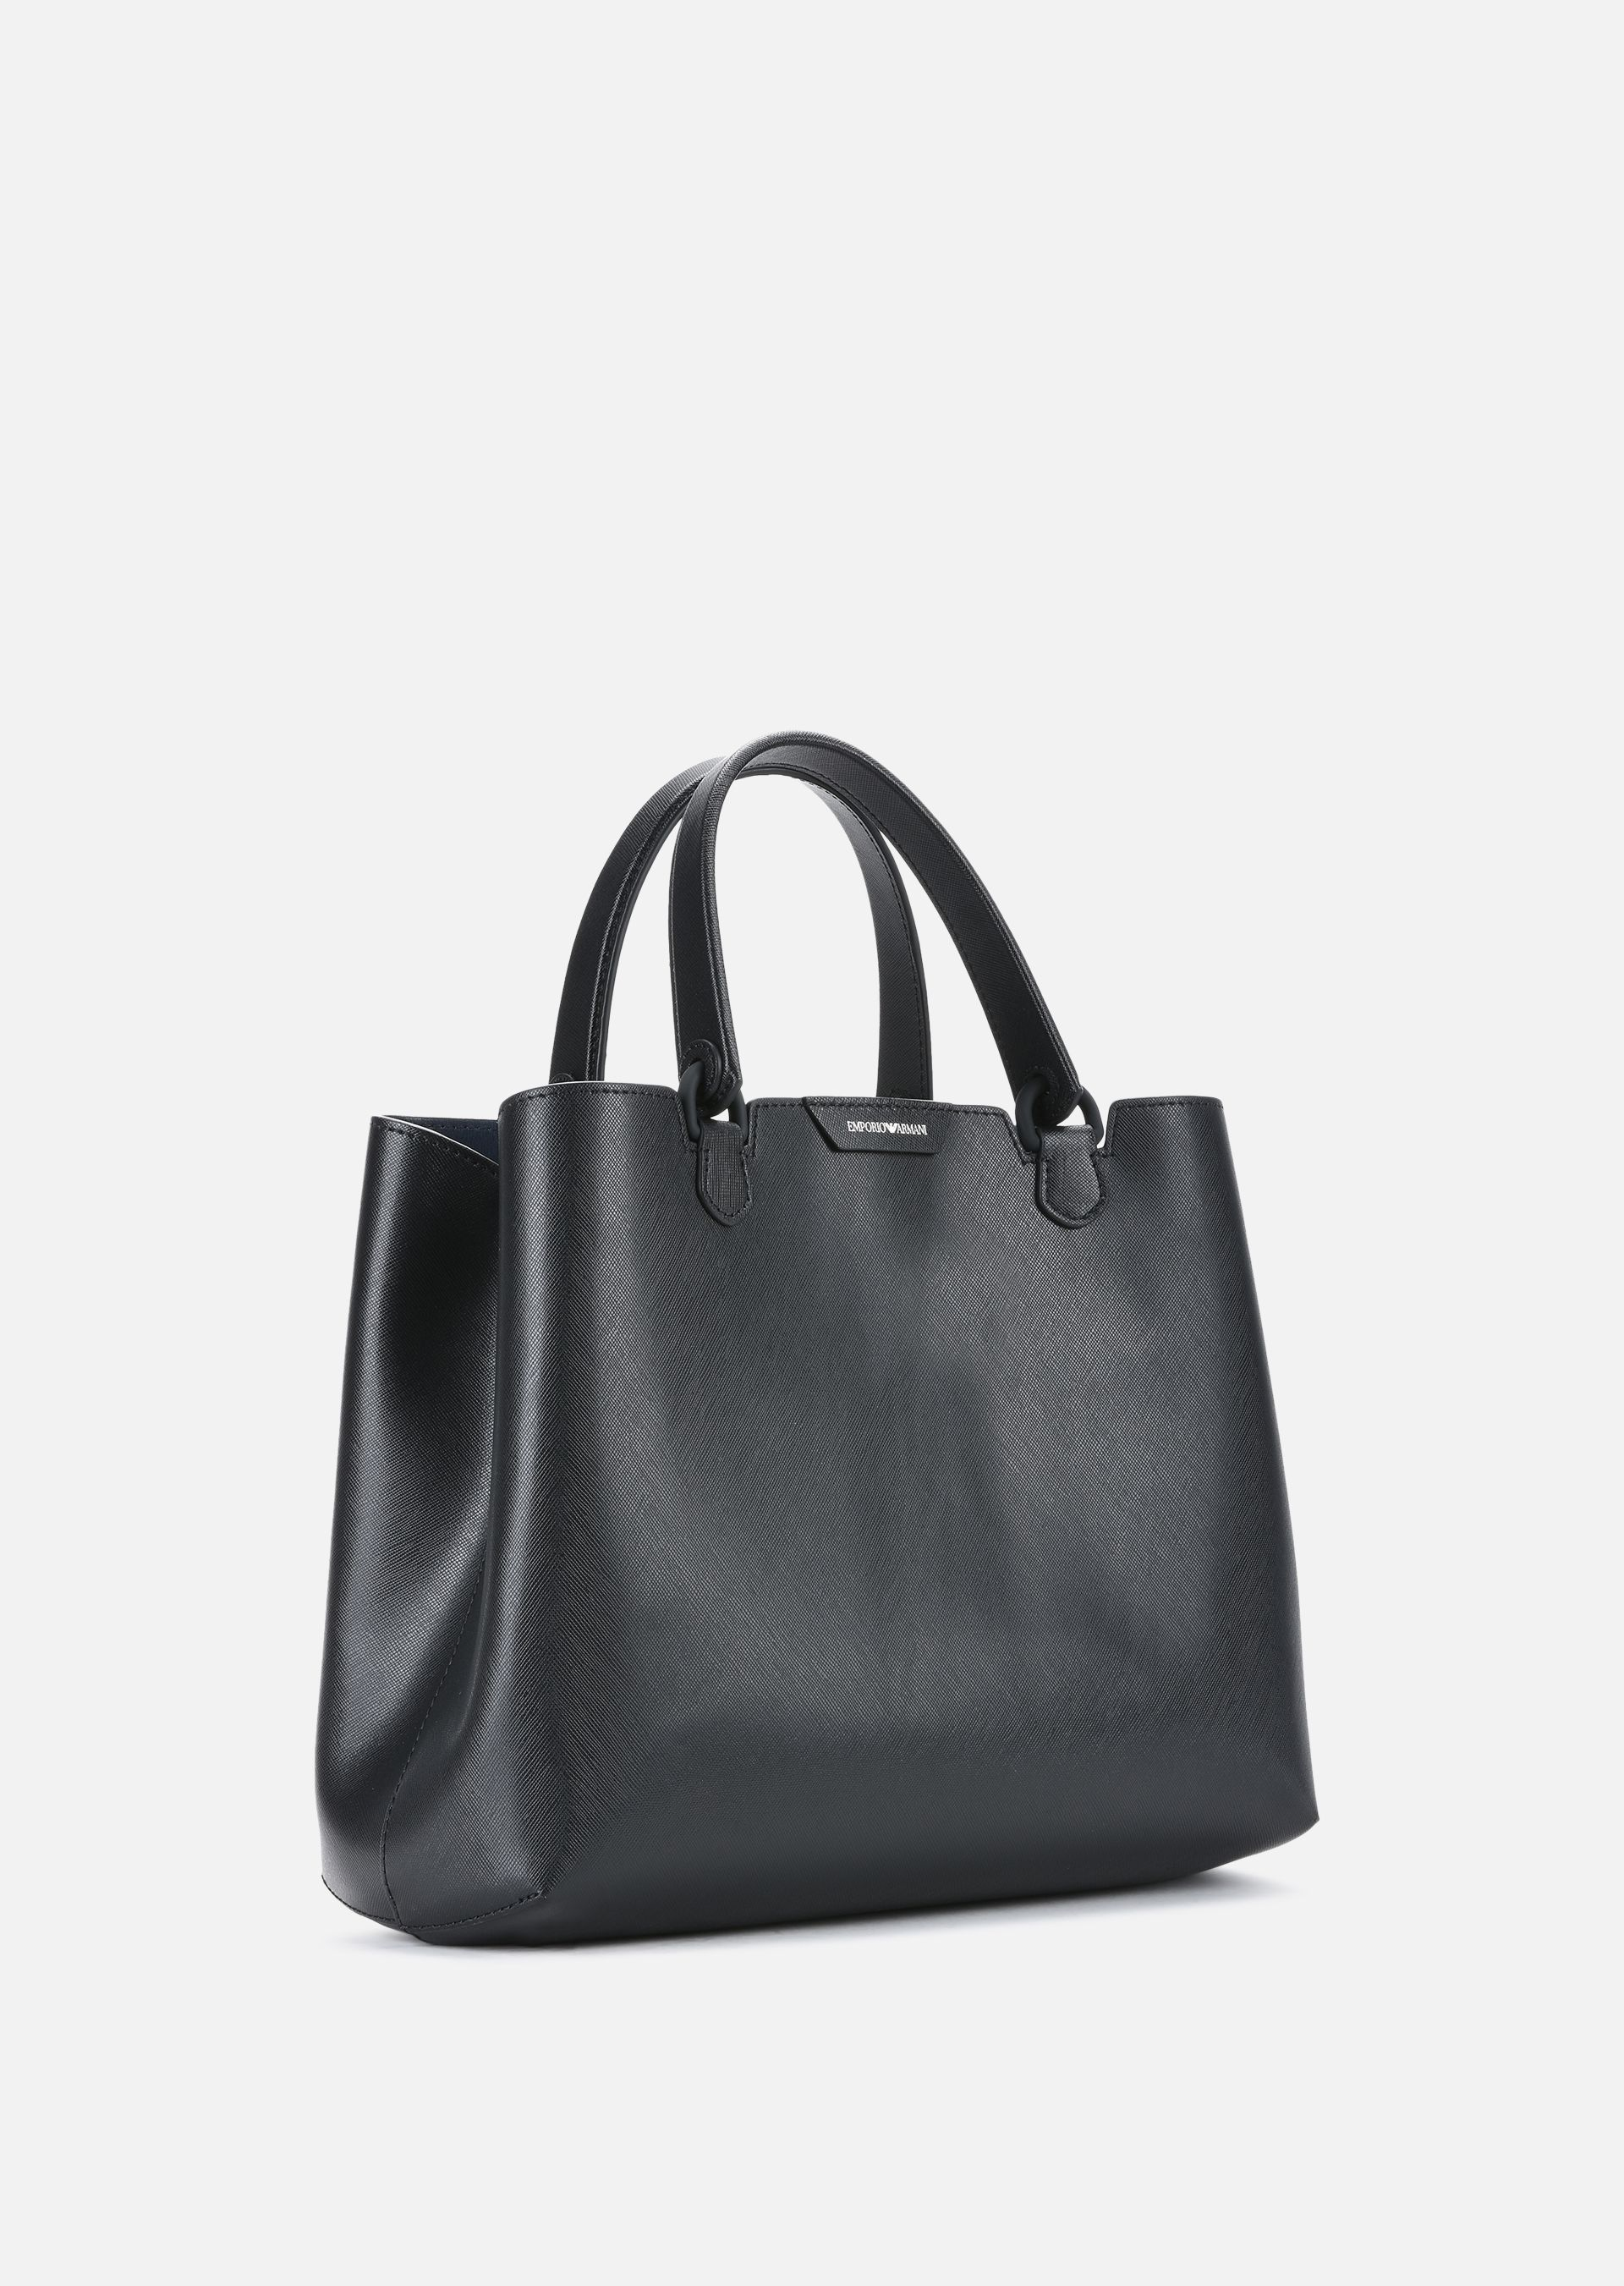 466f56f7badf ... EMPORIO ARMANI LEATHER SHOPPING BAG WITH DETACHABLE STRAP Shopper D r  ...